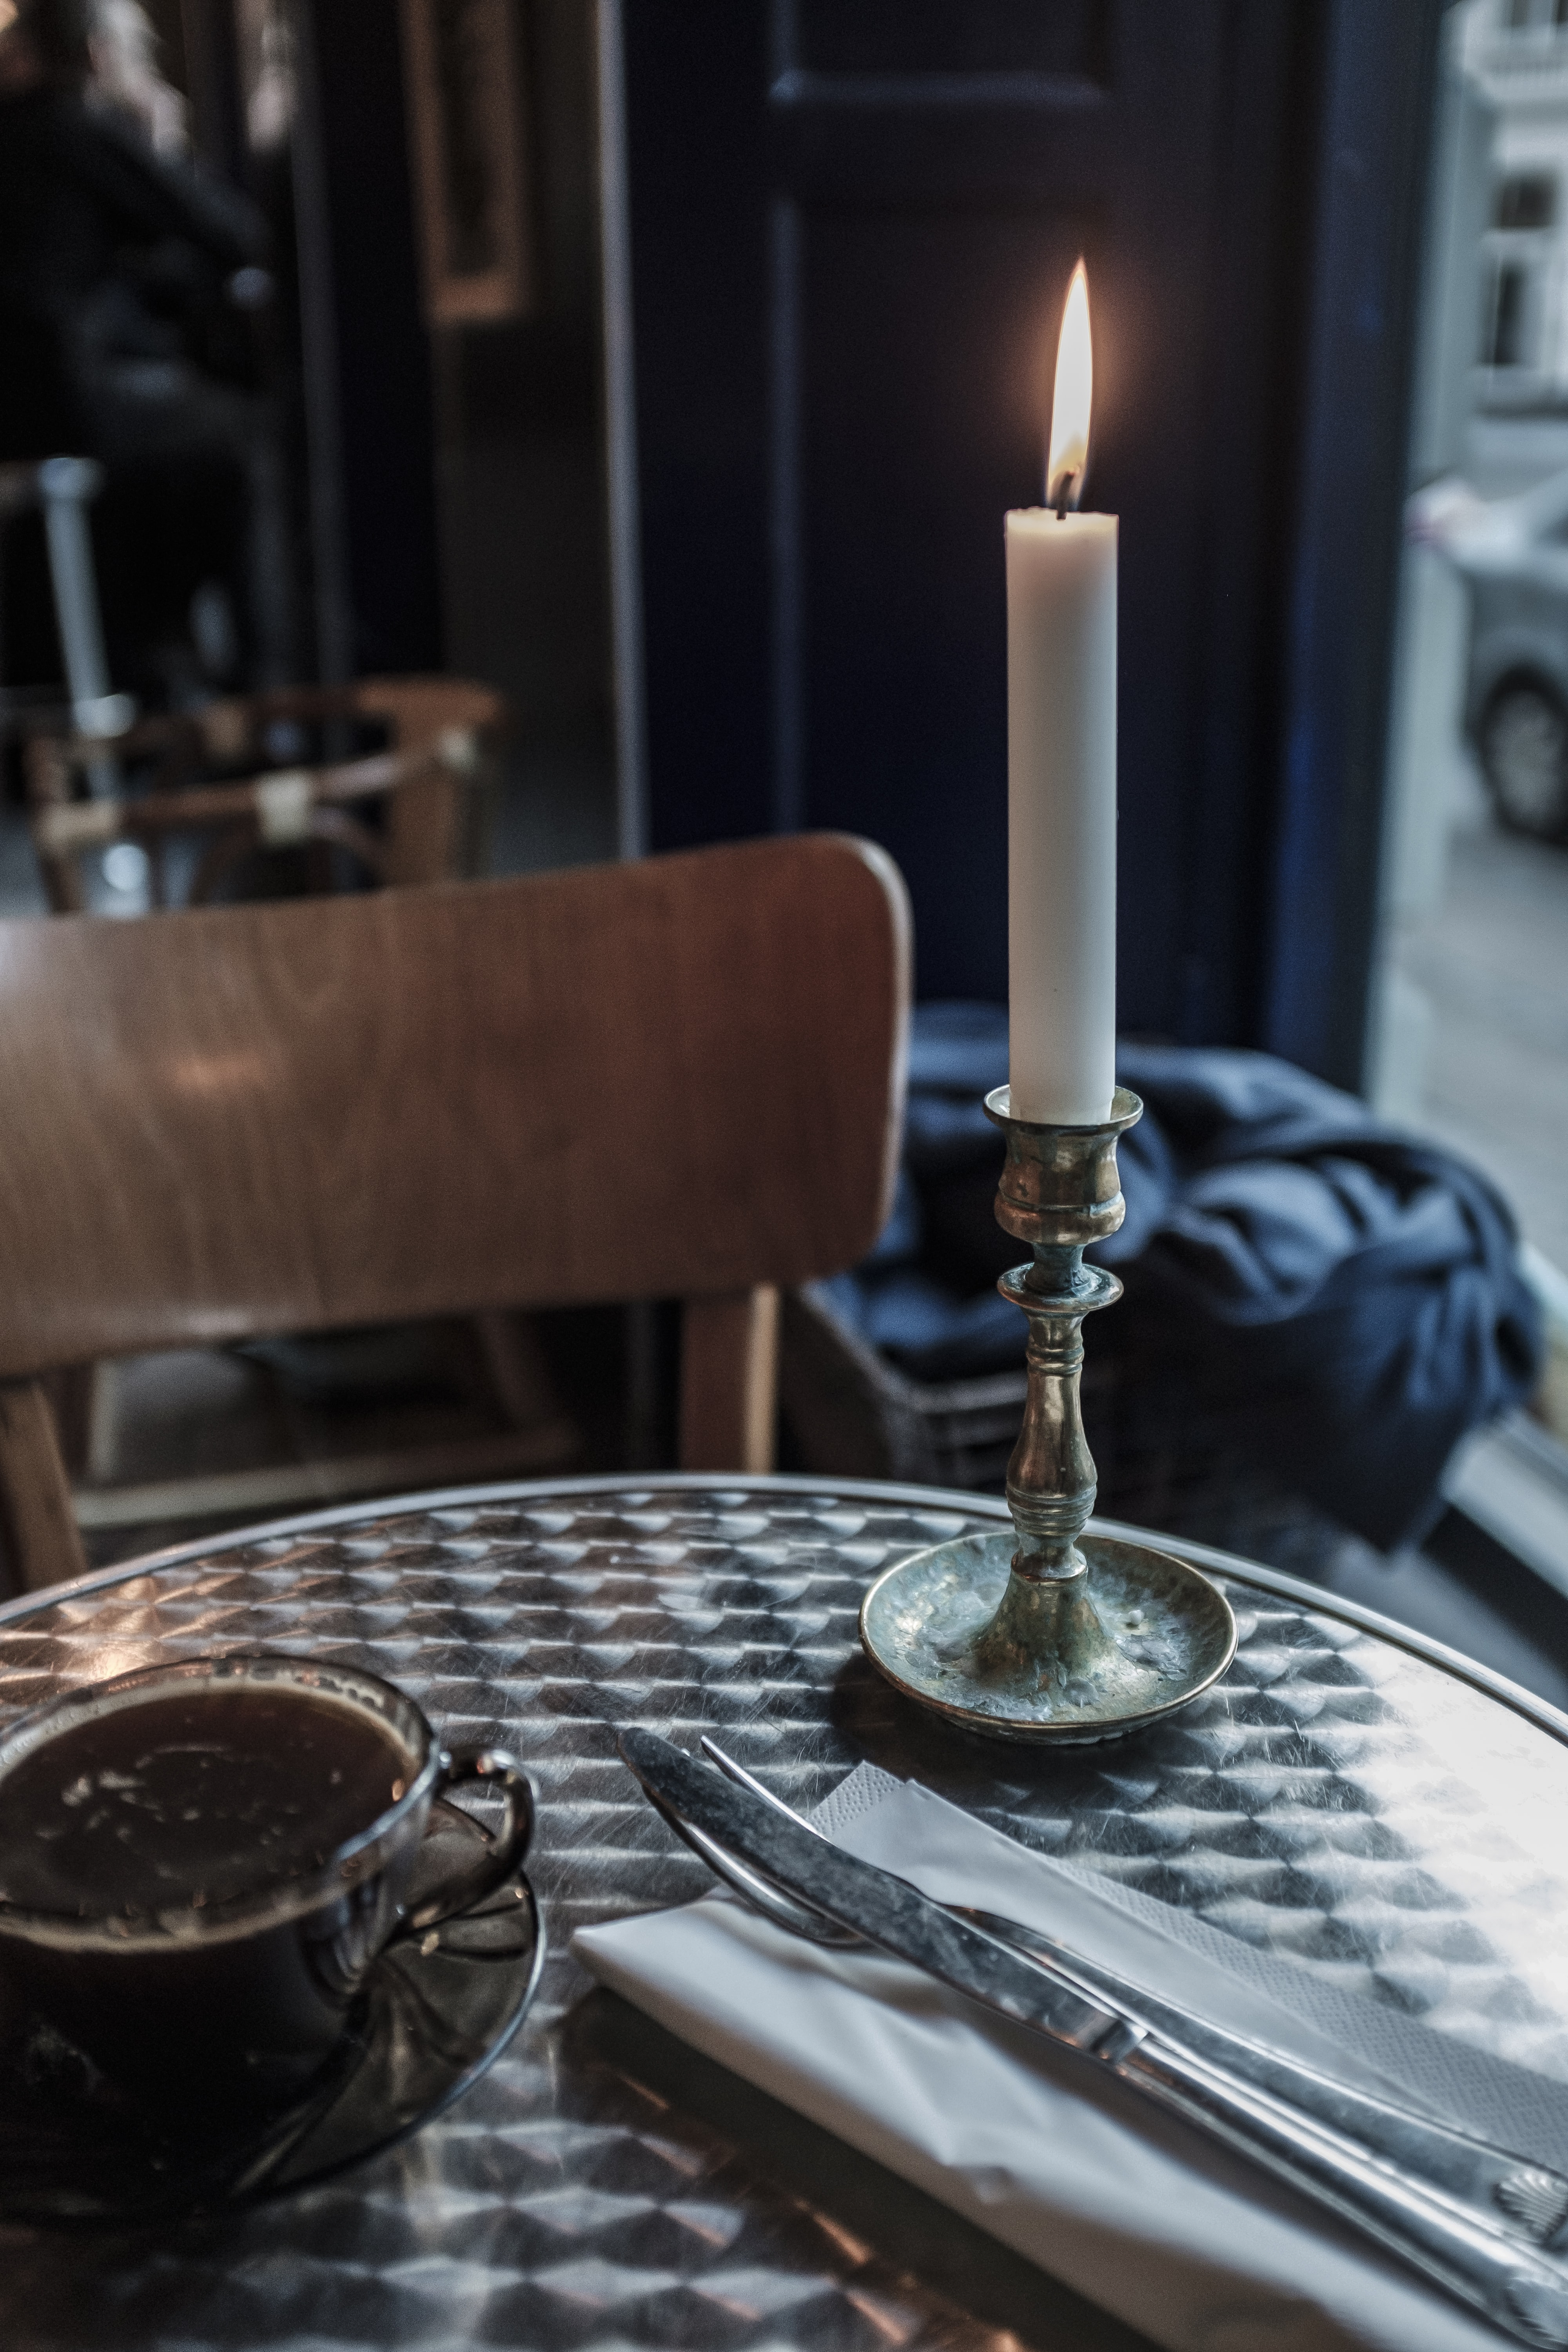 lighted candle on table inside room